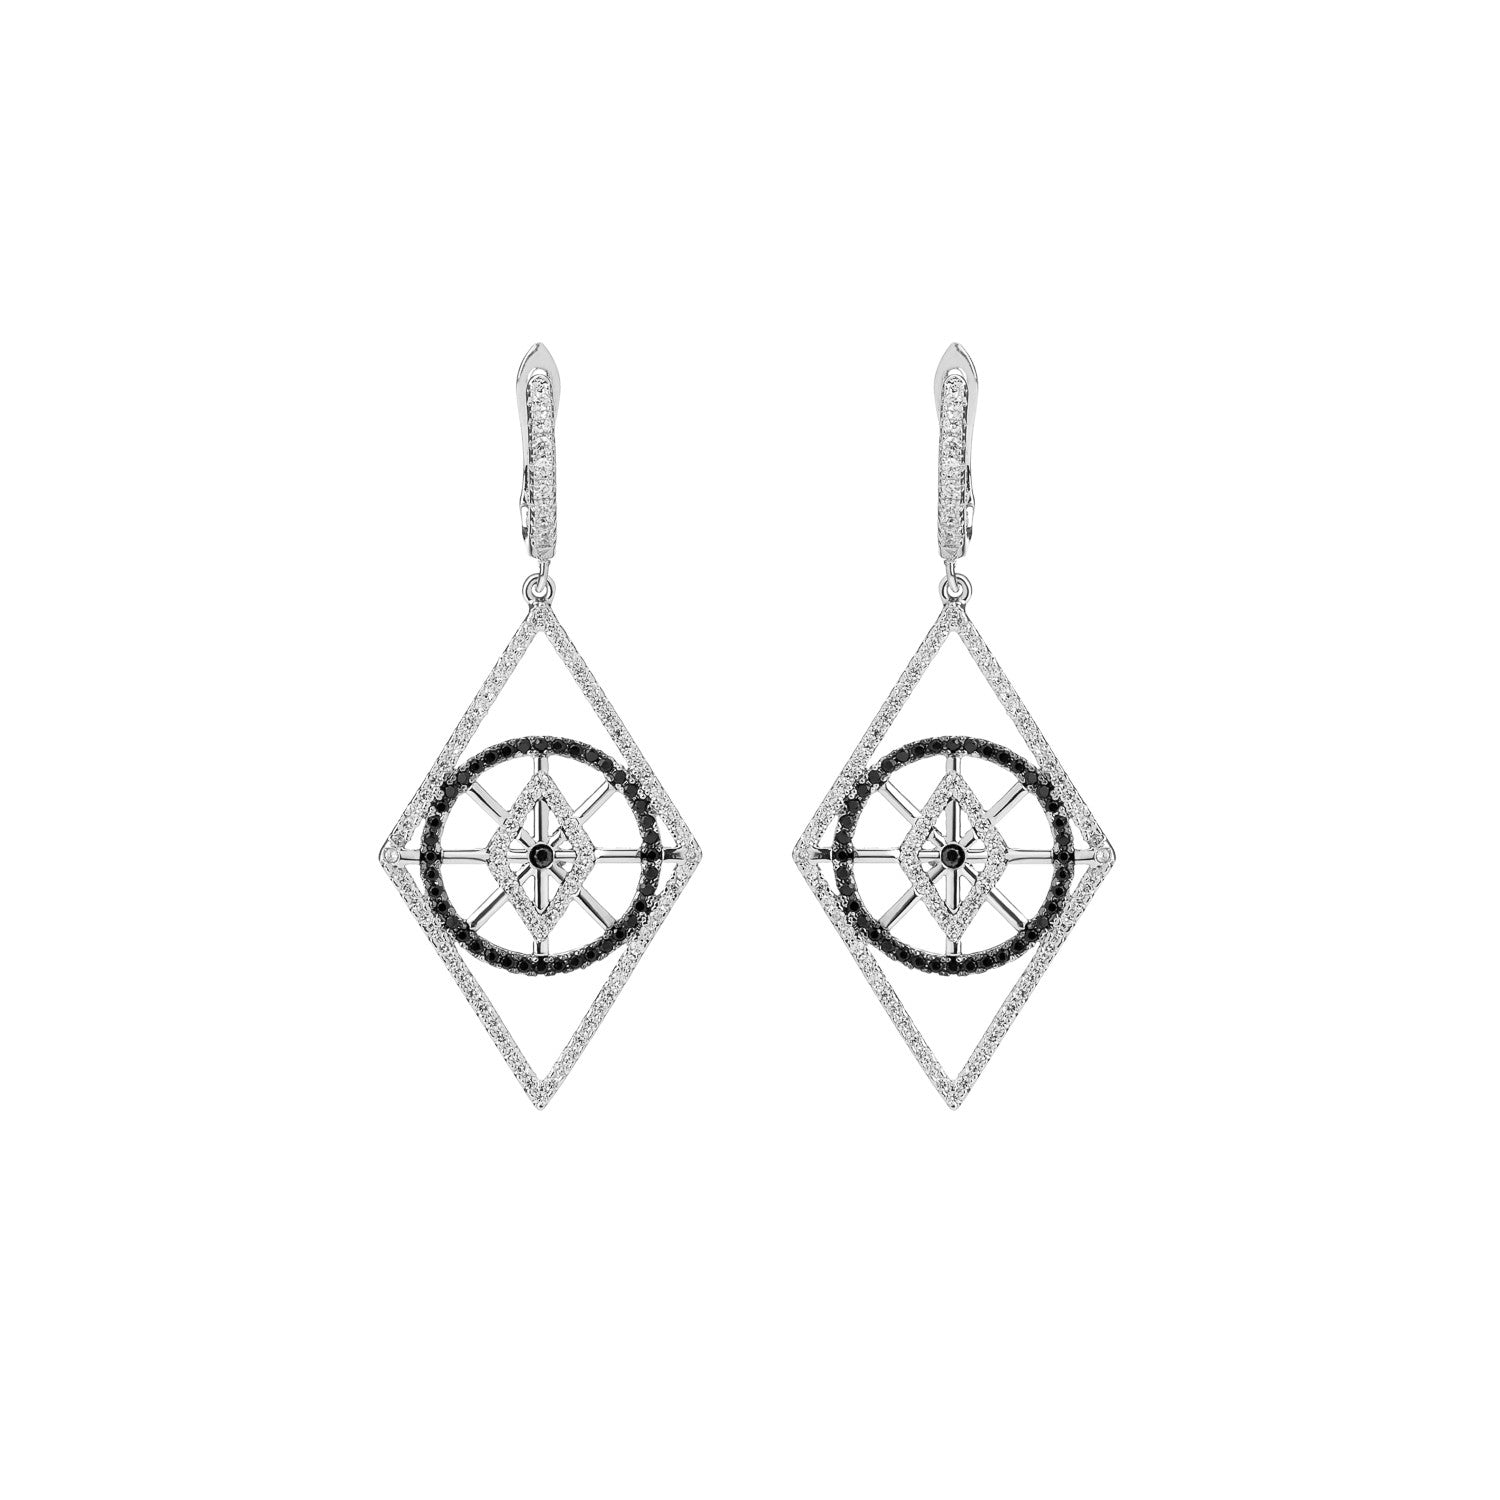 White Gold Rhombus Earrings